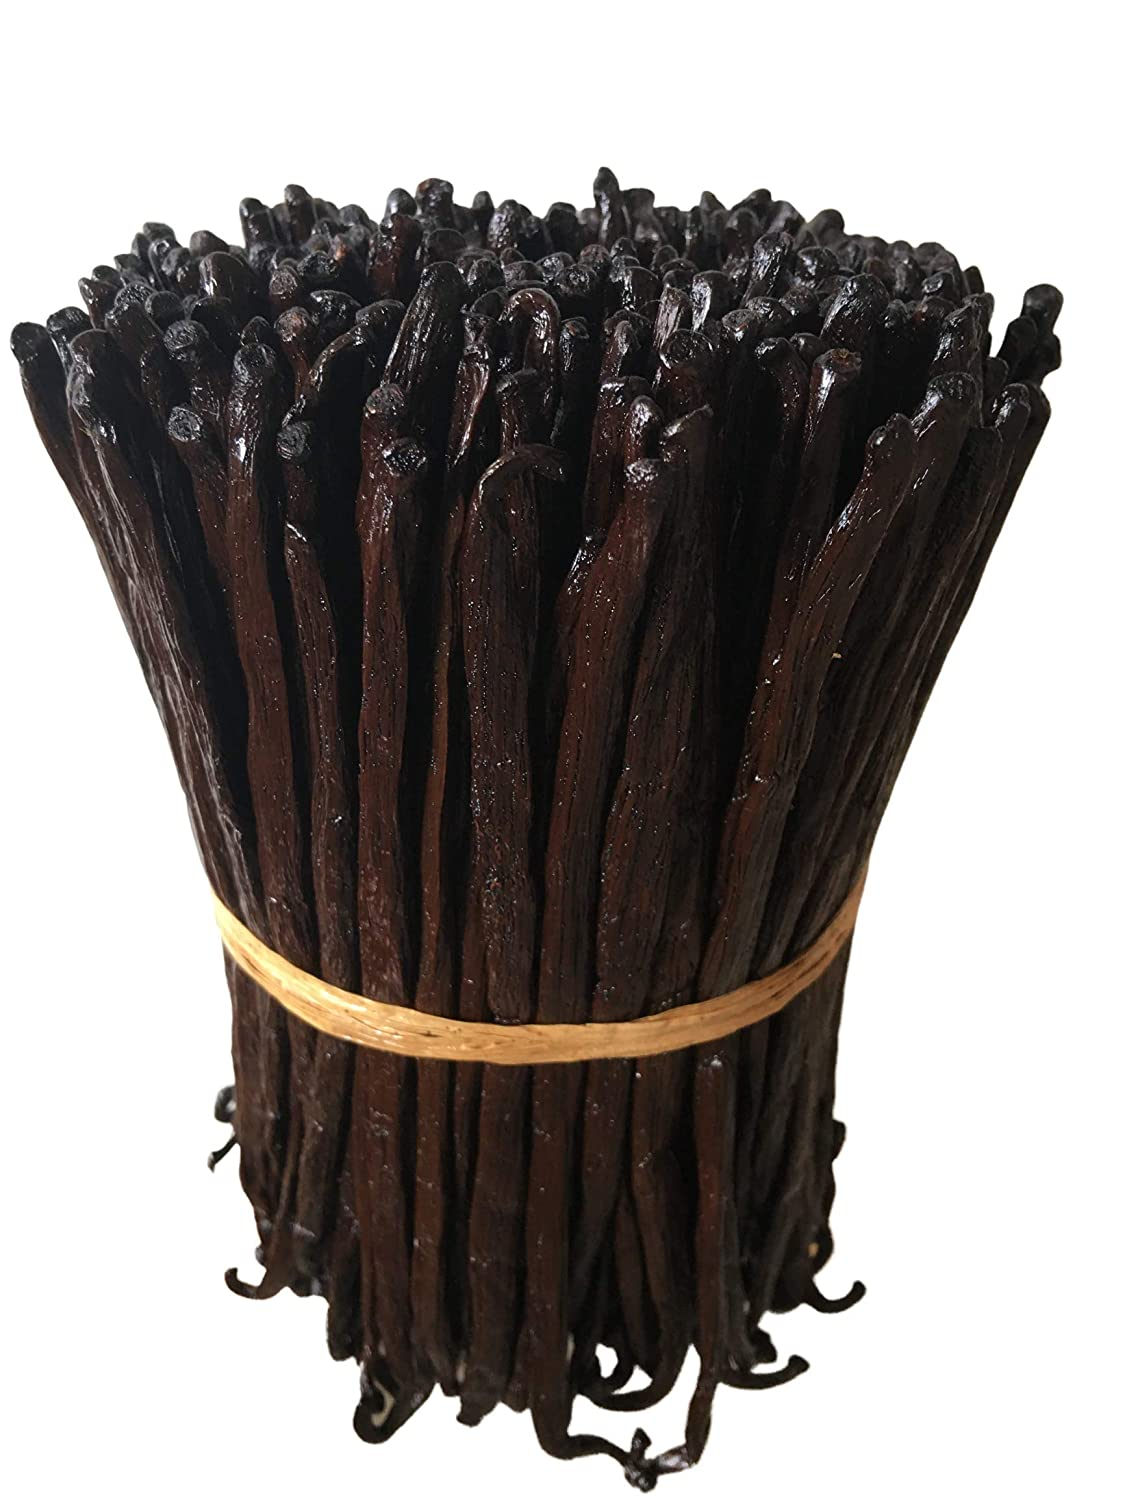 30 Recommended Madagascar Ranking TOP6 Vanilla Beans Grade A and Bulk Extract B for Every